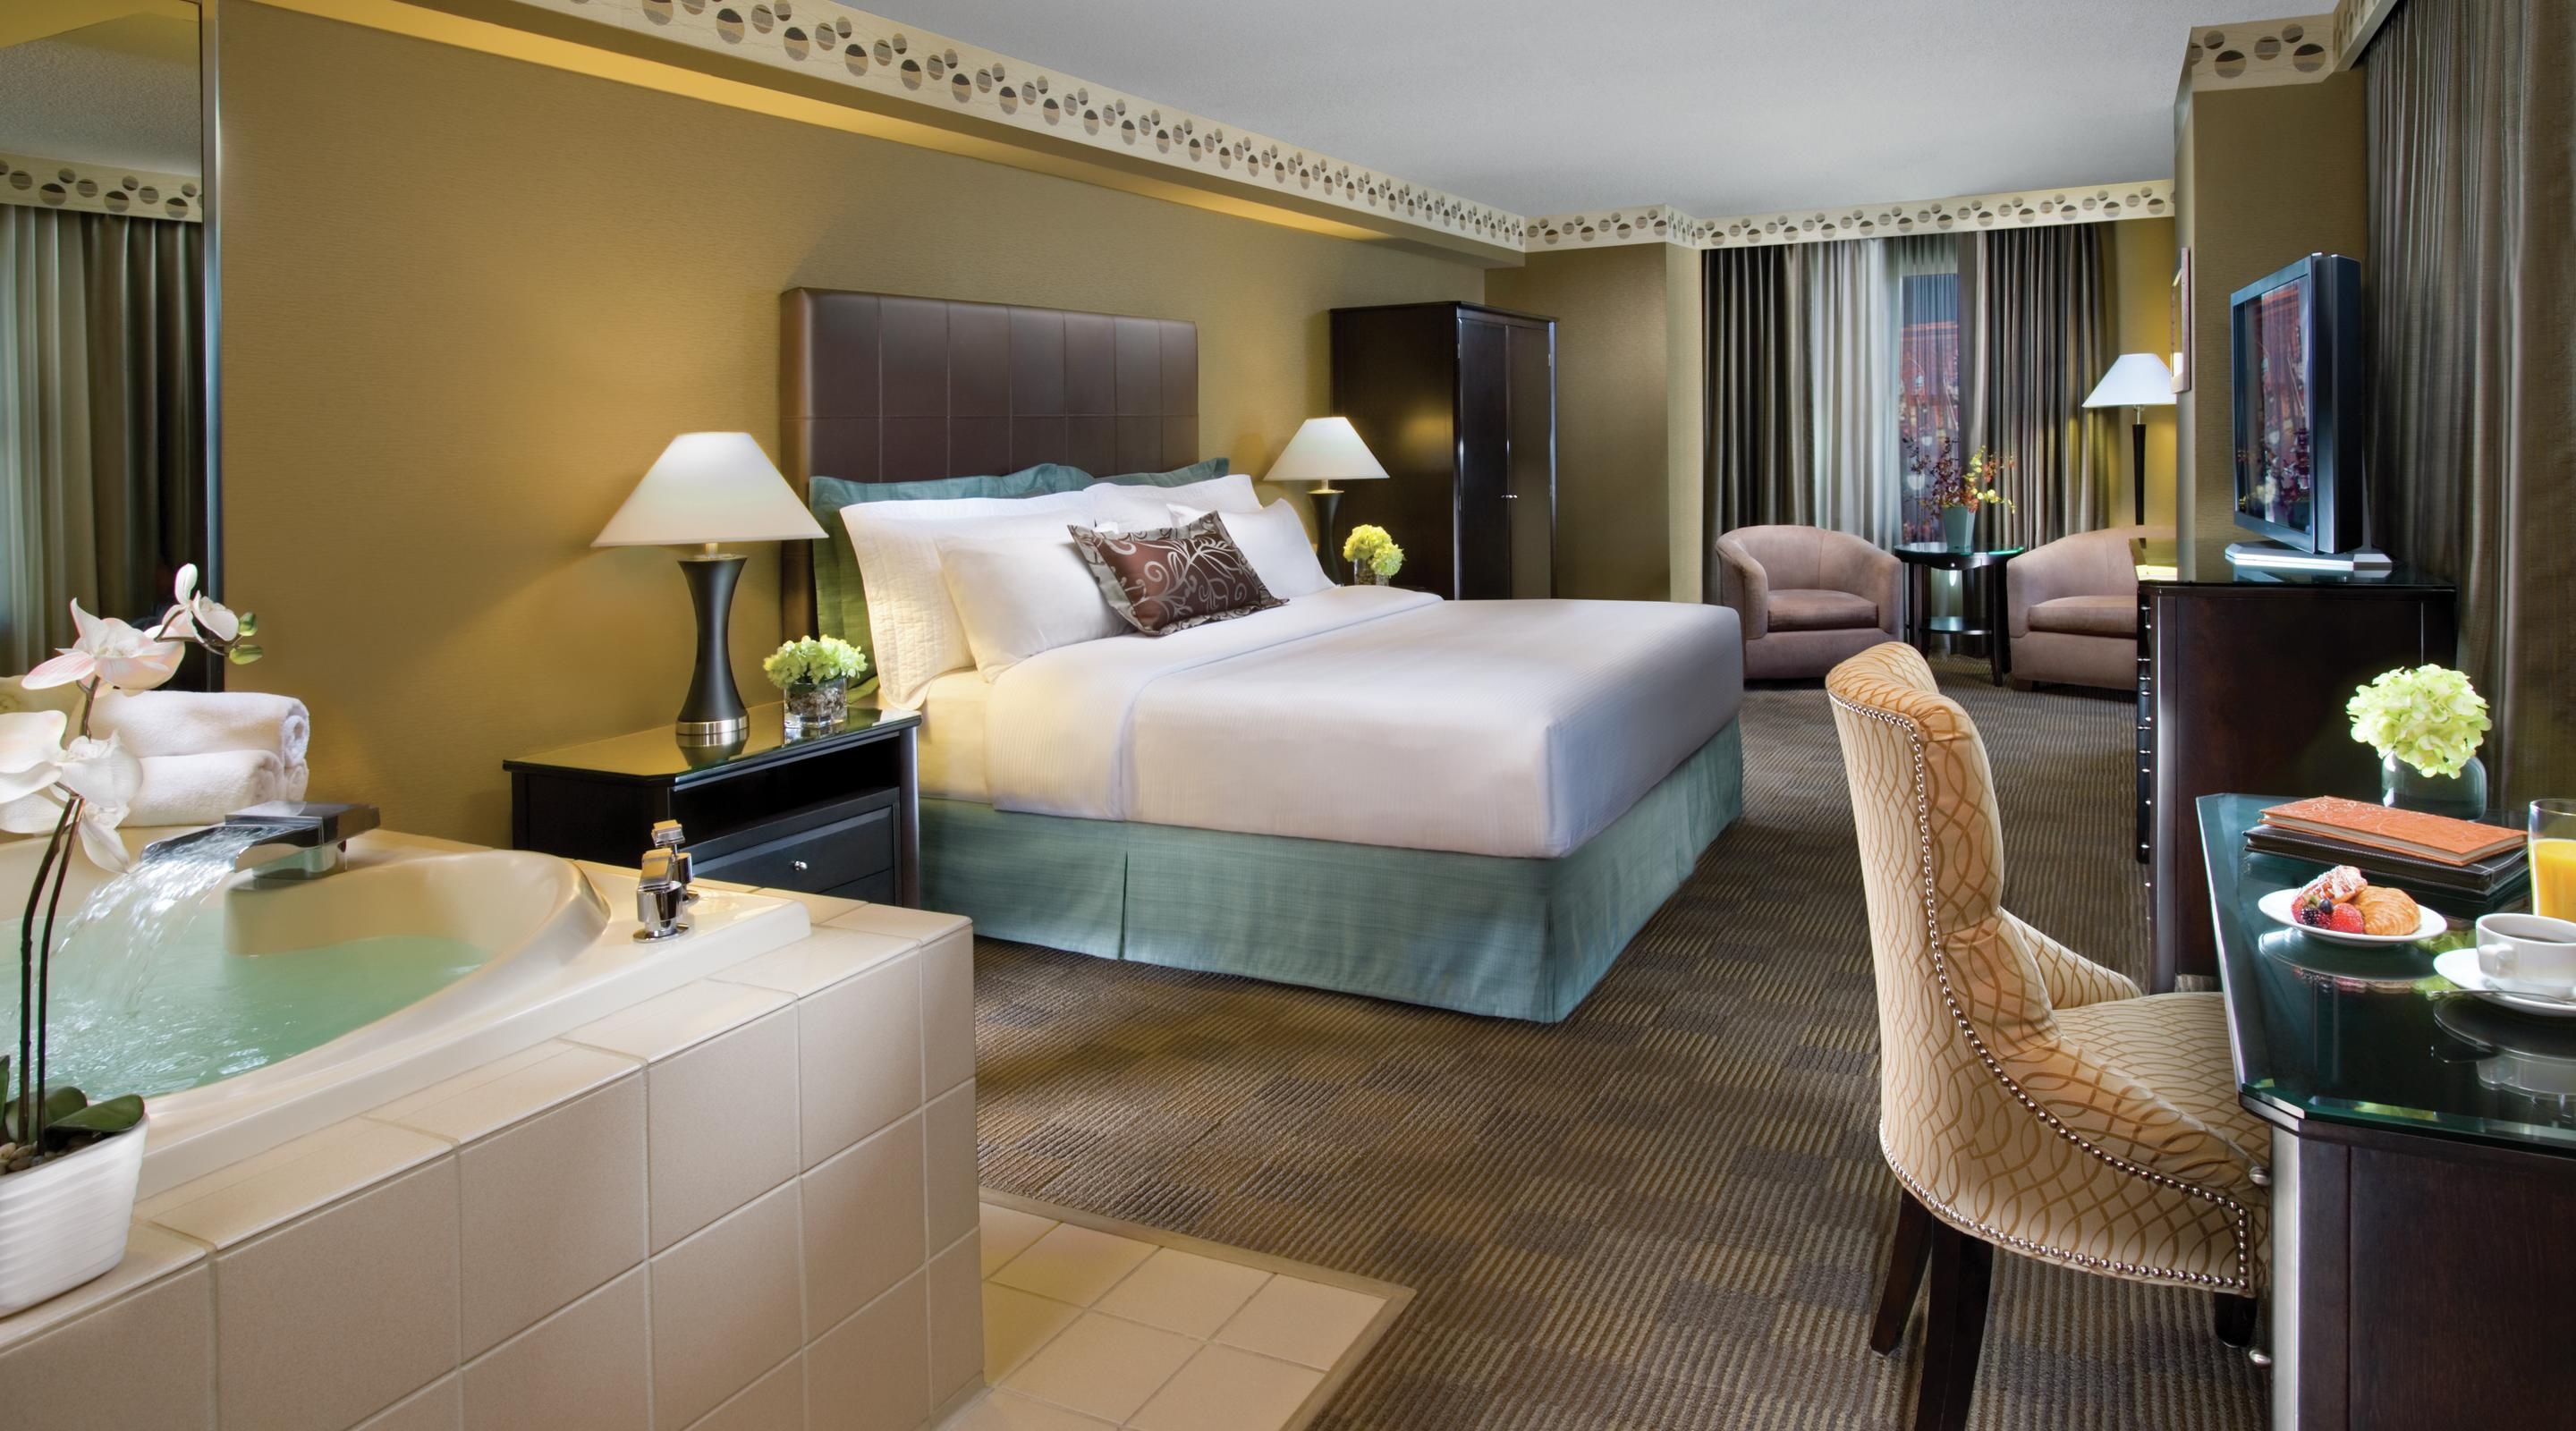 Hotel Rooms With Spa Spa Suite Las Vegas - New York-new York Hotel & Casino